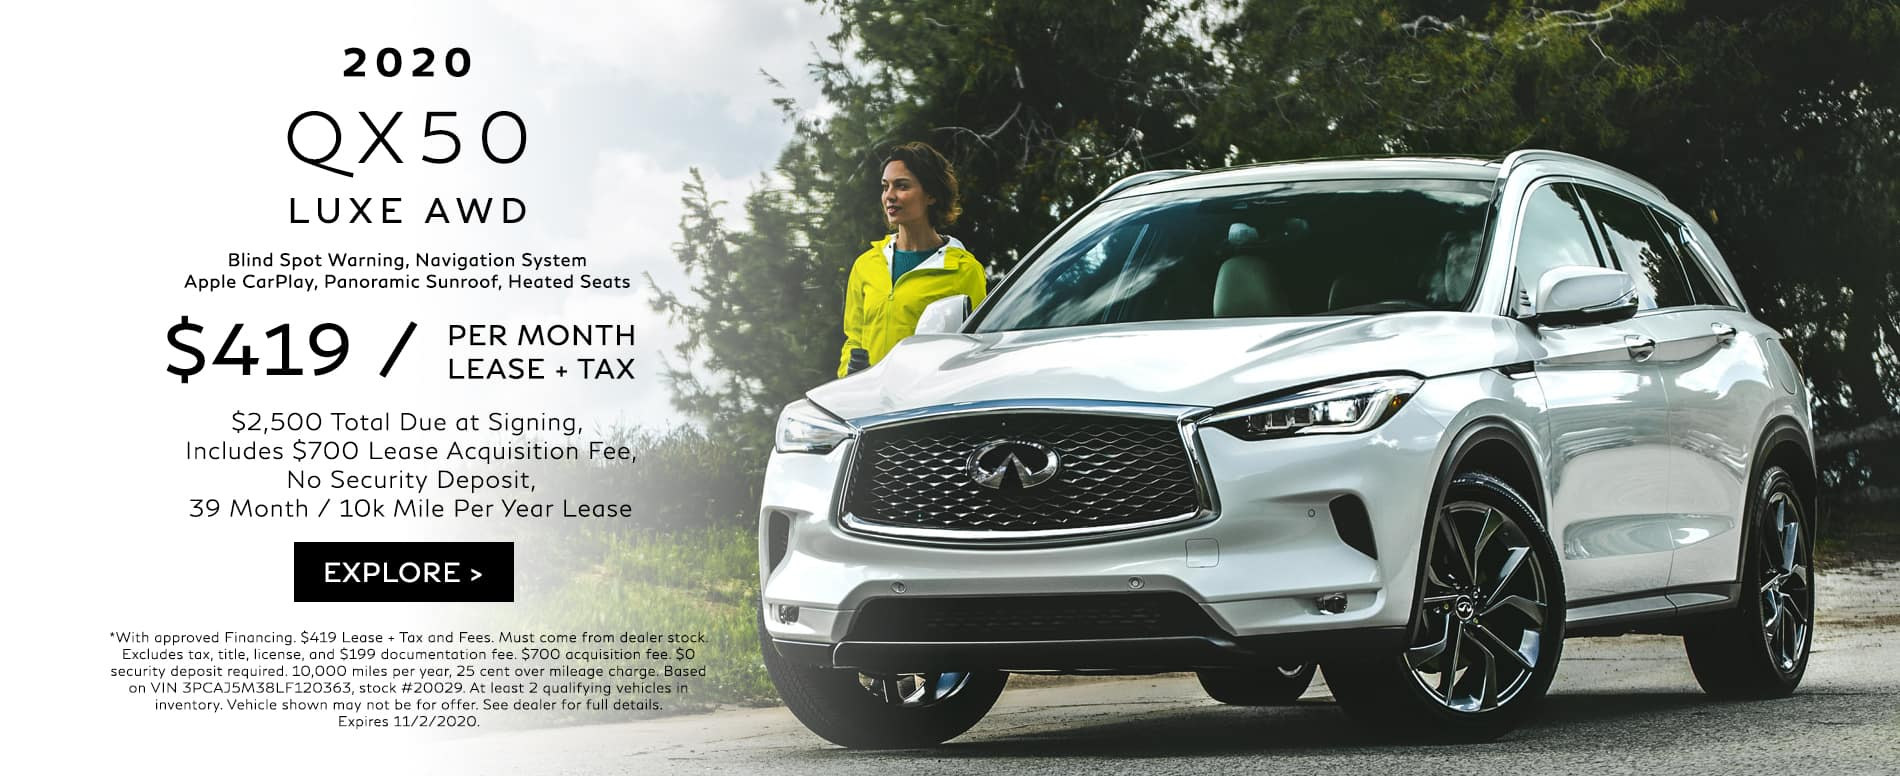 Lease a QX50 for $419/mo